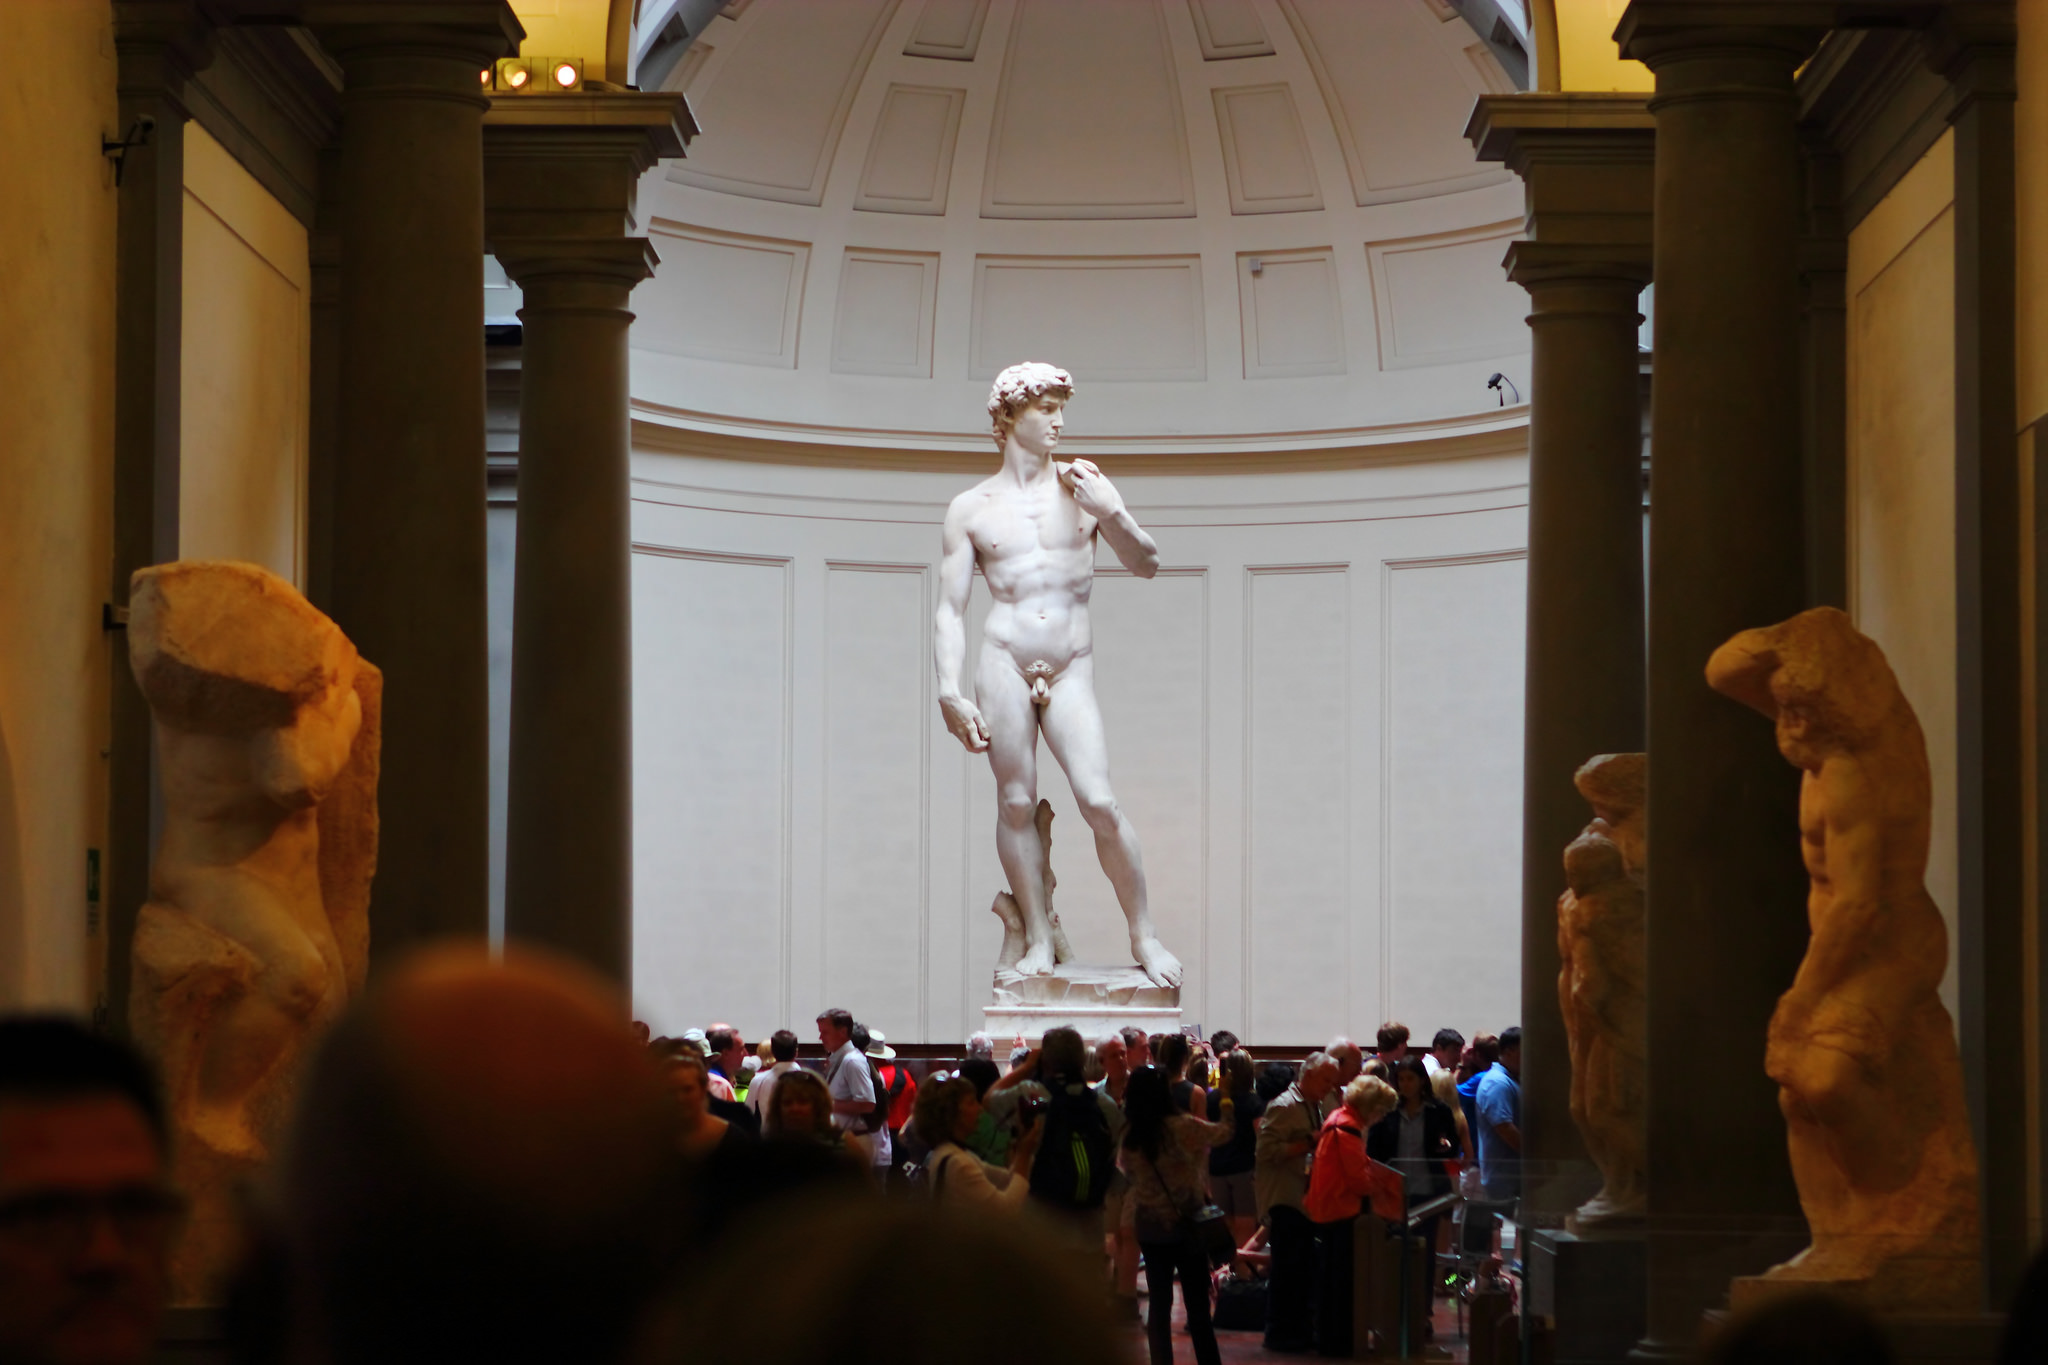 The David standing in a large circular room. The statue is raised on a pedestal, so it is not obstructed by the large crowd gathered in front of it.